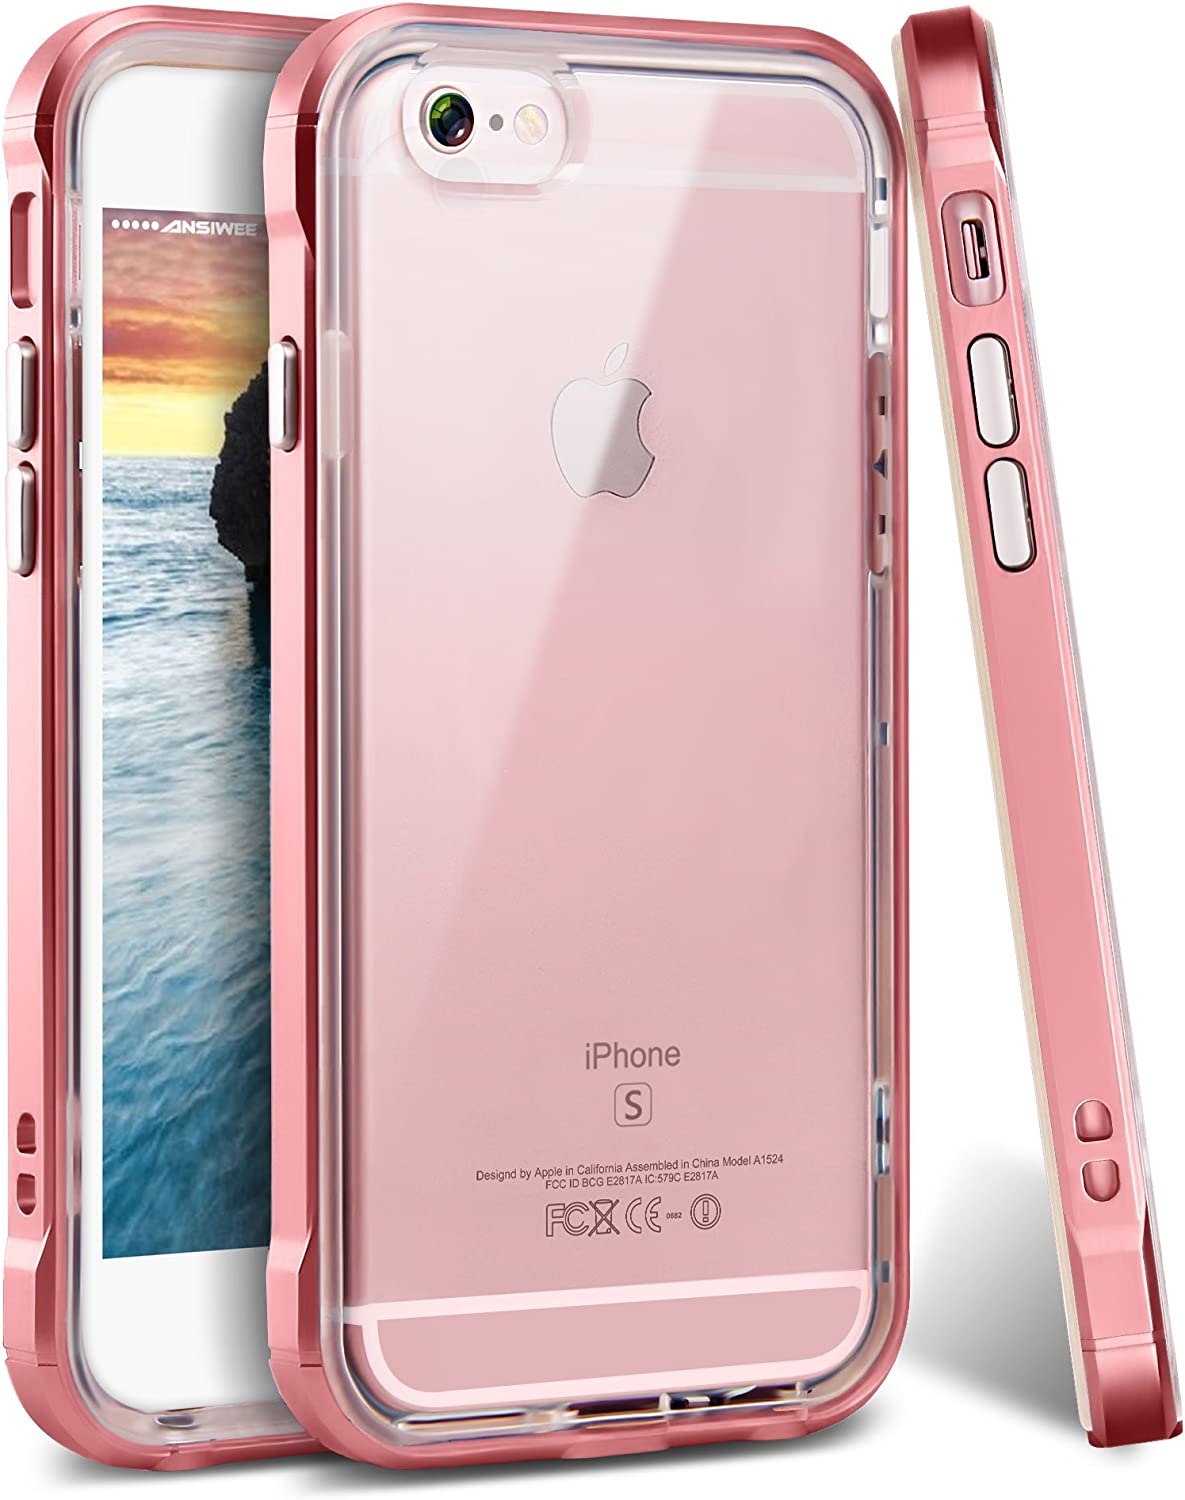 ANSIWEE iPhone 6s Plus Case, Reinforced Frame Crystal Highly Durable Shock-Absorption Flexible Soft Rubber TPU Bumper Hybrid Protective Case for Apple iPhone 6s/6 Plus 5.5inch (Rose Gold)